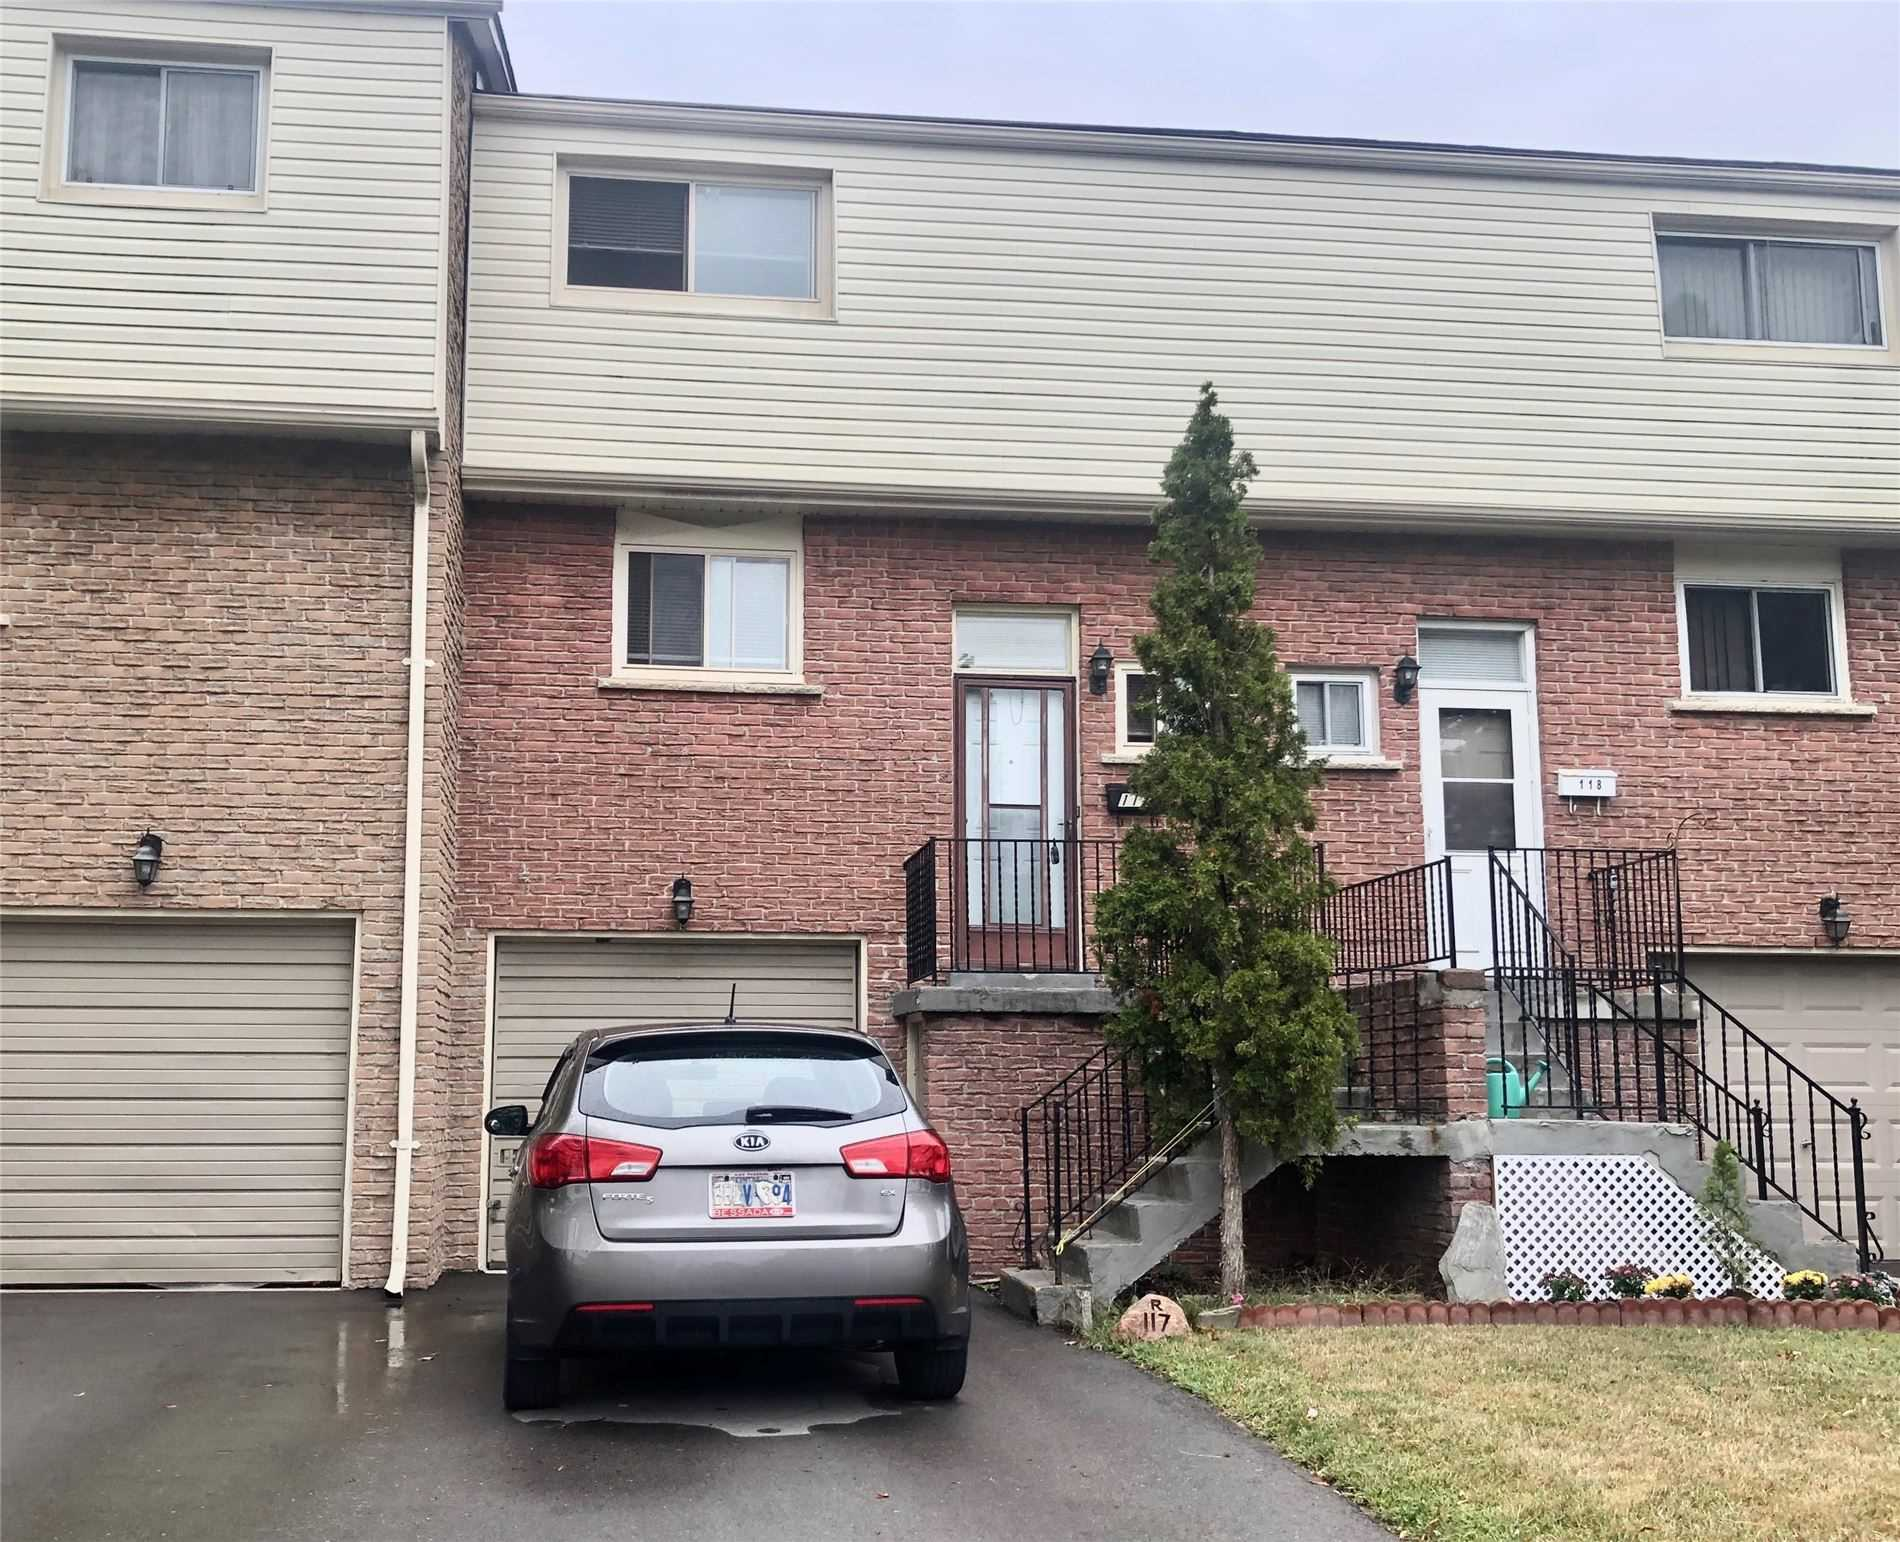 Lovingly Maintained 3 Level Townhome Located In The Heart Of Pickering. Spacious & Functional Floorplan Offers Combined Living & Dining, Bright Eat-In Kitchen With Plenty Of Cabinetry. 3 Great Sized Bedrooms W/Large Closets. Lower Level Boasts High Ceilings, Laminate Floors & Walk-Out To Private Backyard. Room To Park 3 Cars With Ample Visitors Parking.